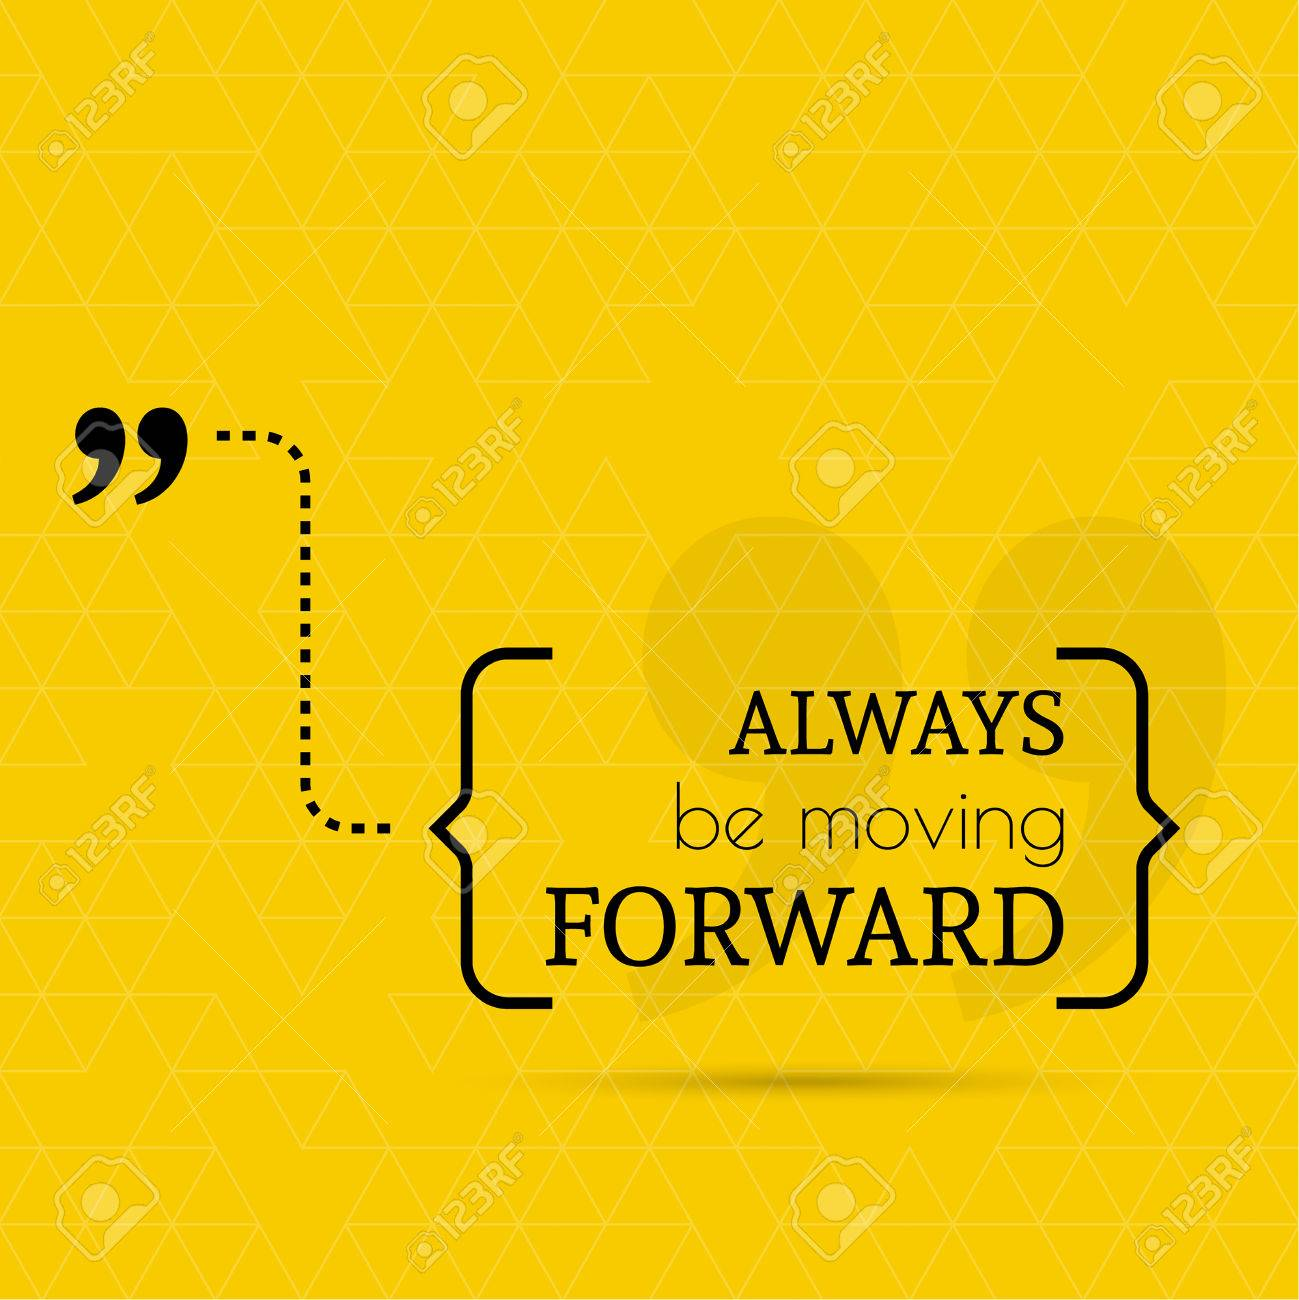 Moving Quote Inspirational Quotealways Be Moving Forwardwise Saying In